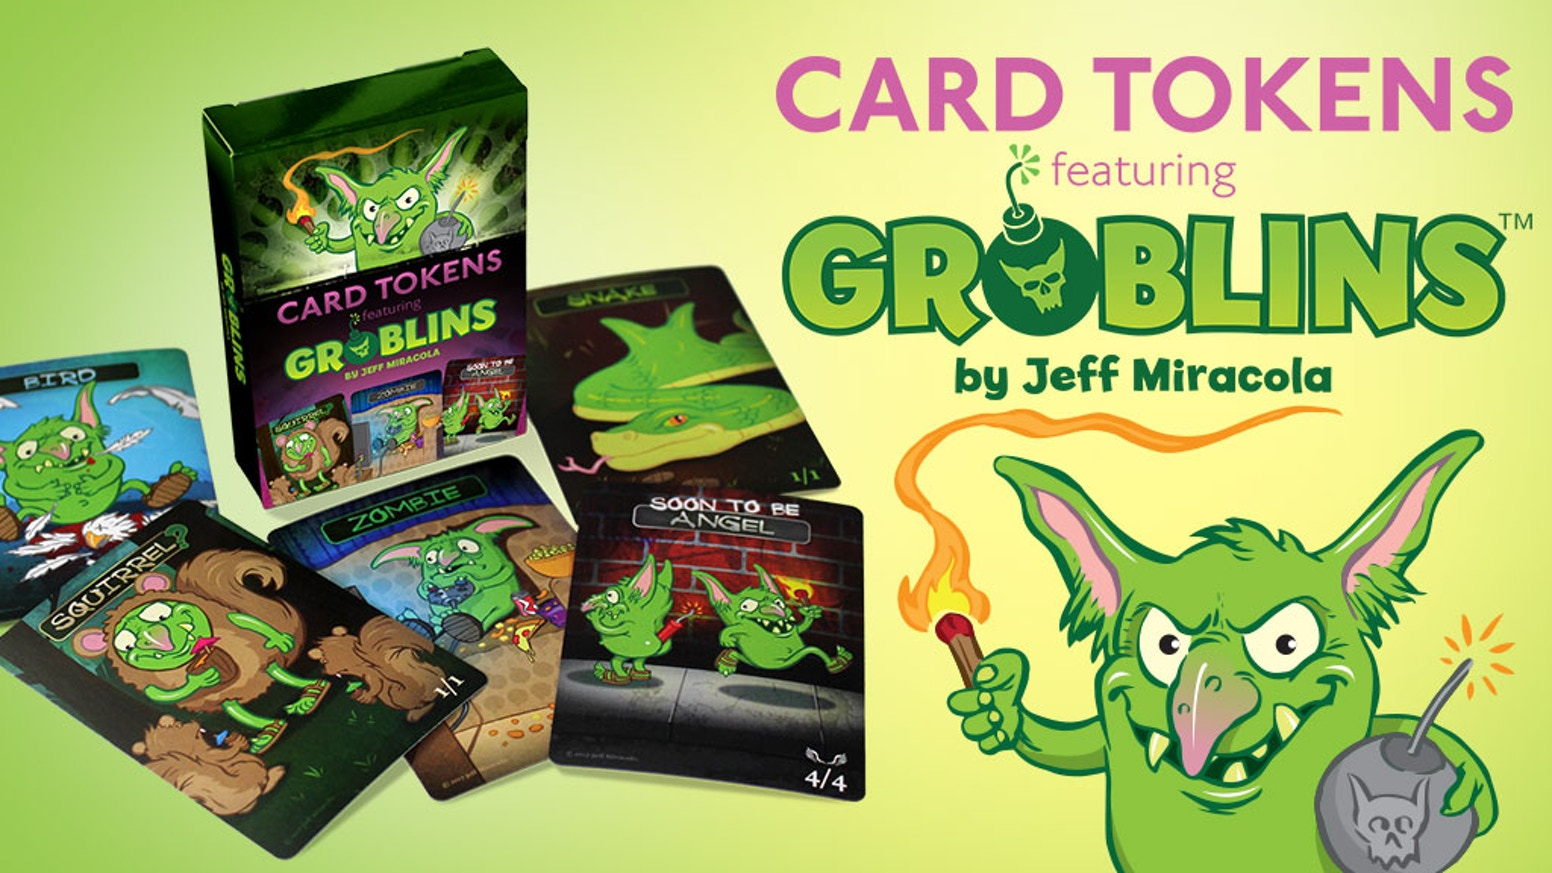 Card Tokens featuring Groblins™, the most mischievous, naughty, & scheming little creatures to ever contaminate your card game decks.